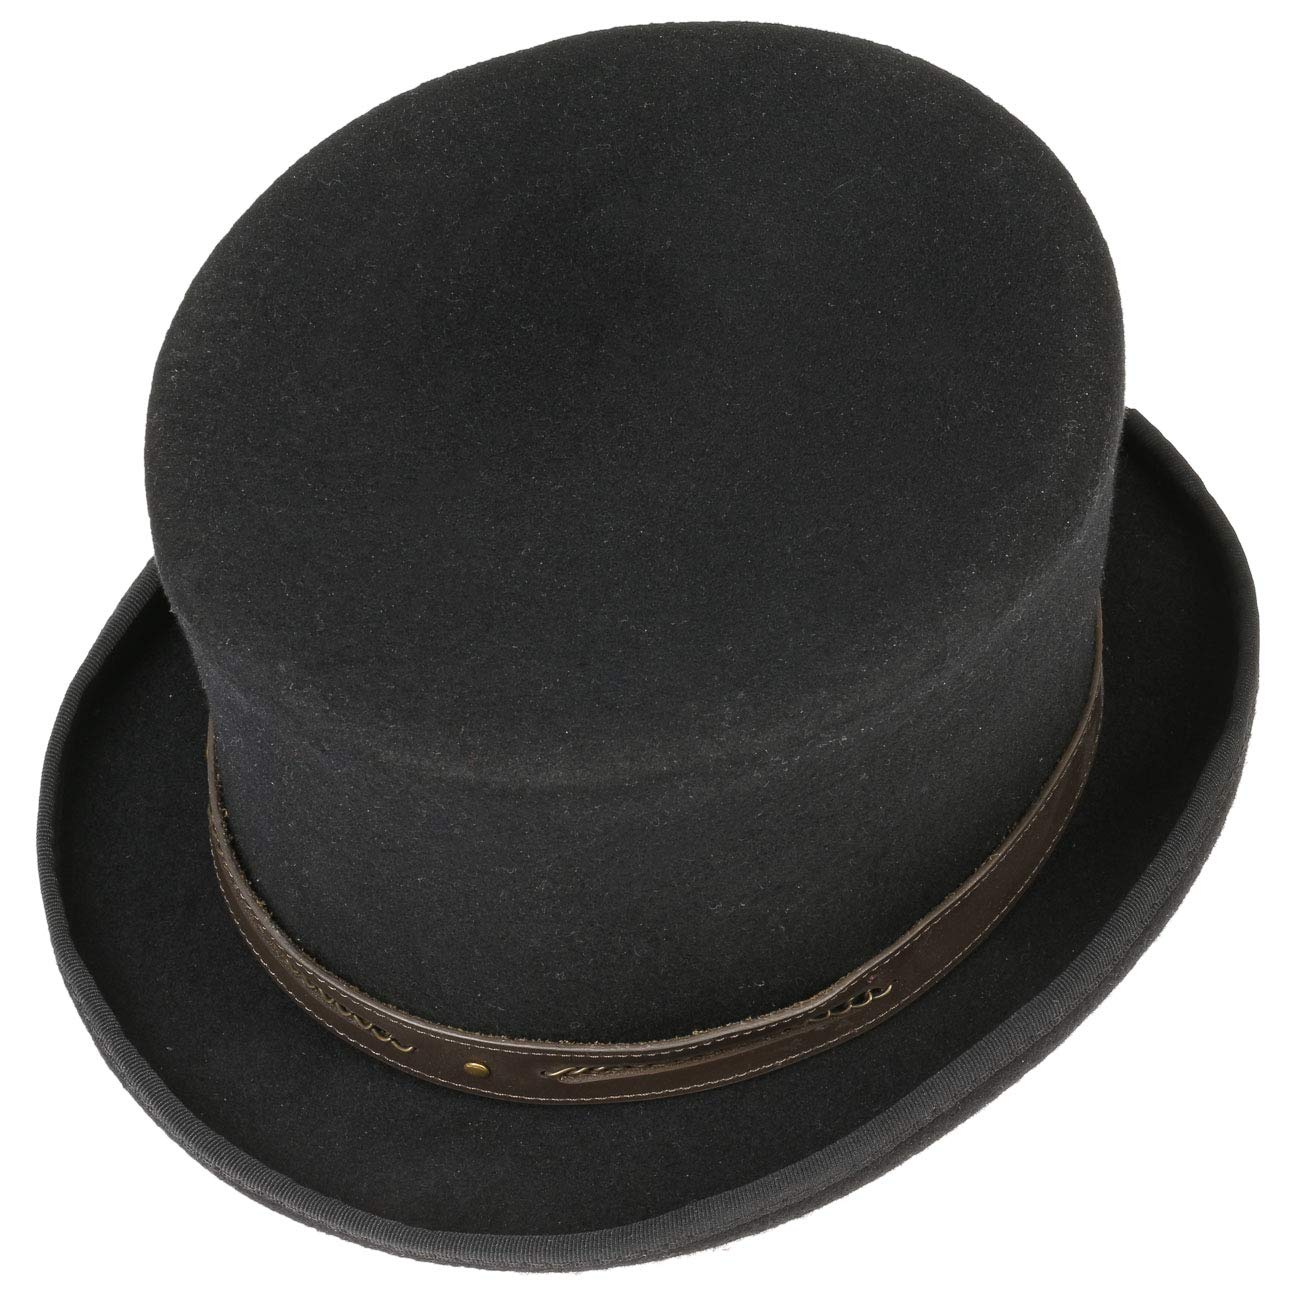 335d2f8cb08ef6 Conner Hats Men's Chain Link Steampunk Top Hat: Amazon.ca: Clothing &  Accessories